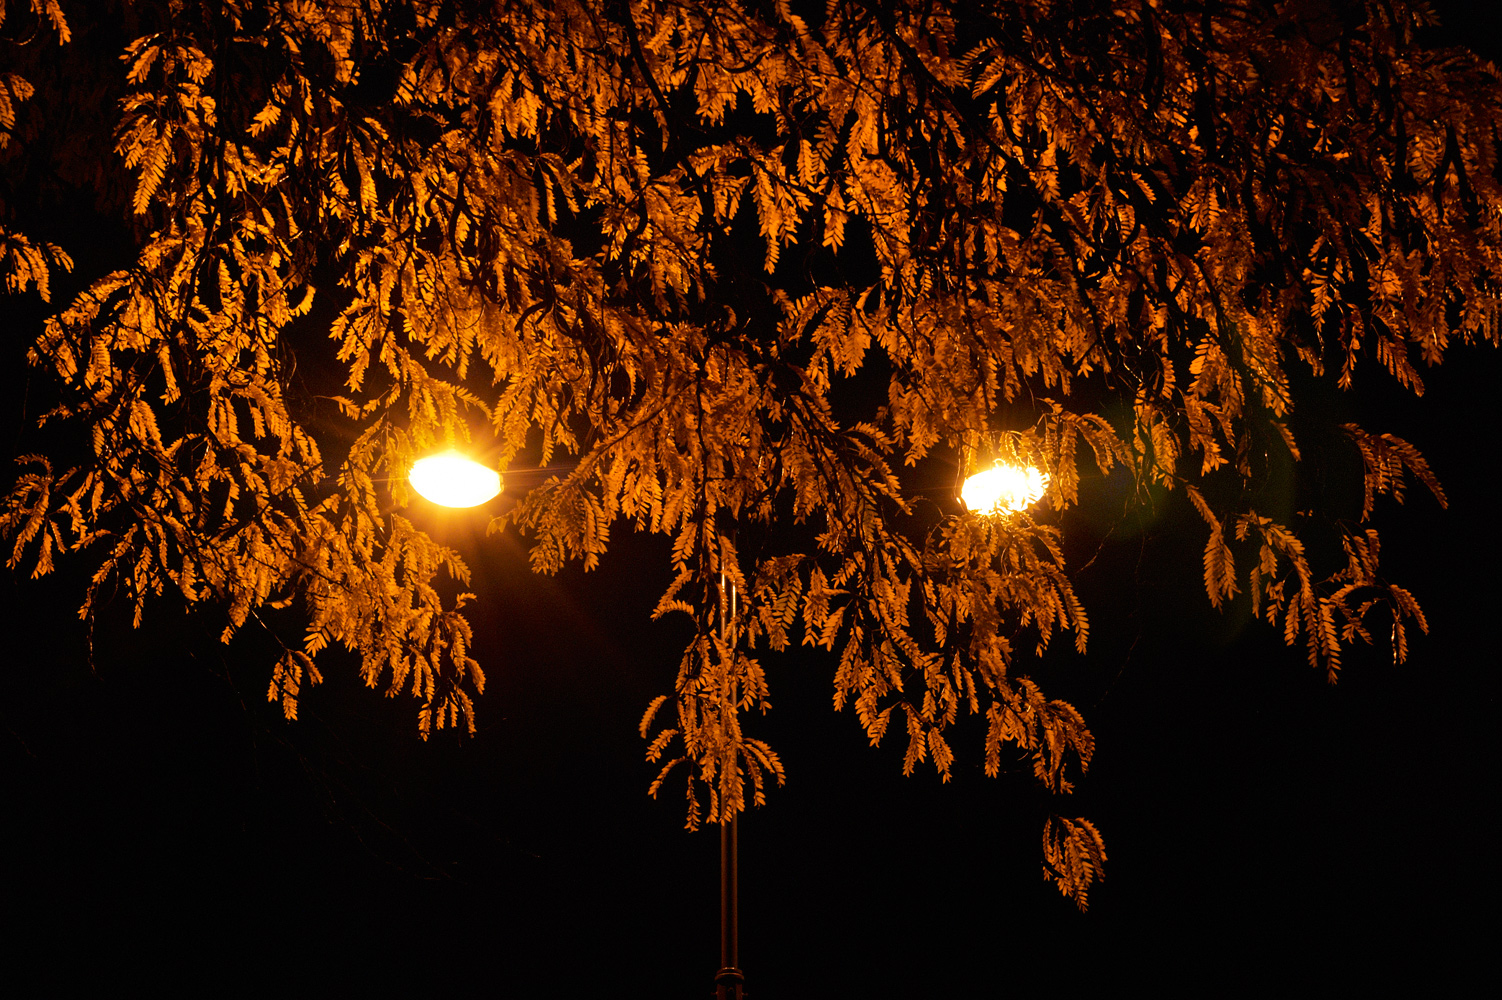 Night Lights – lumières nocturnes